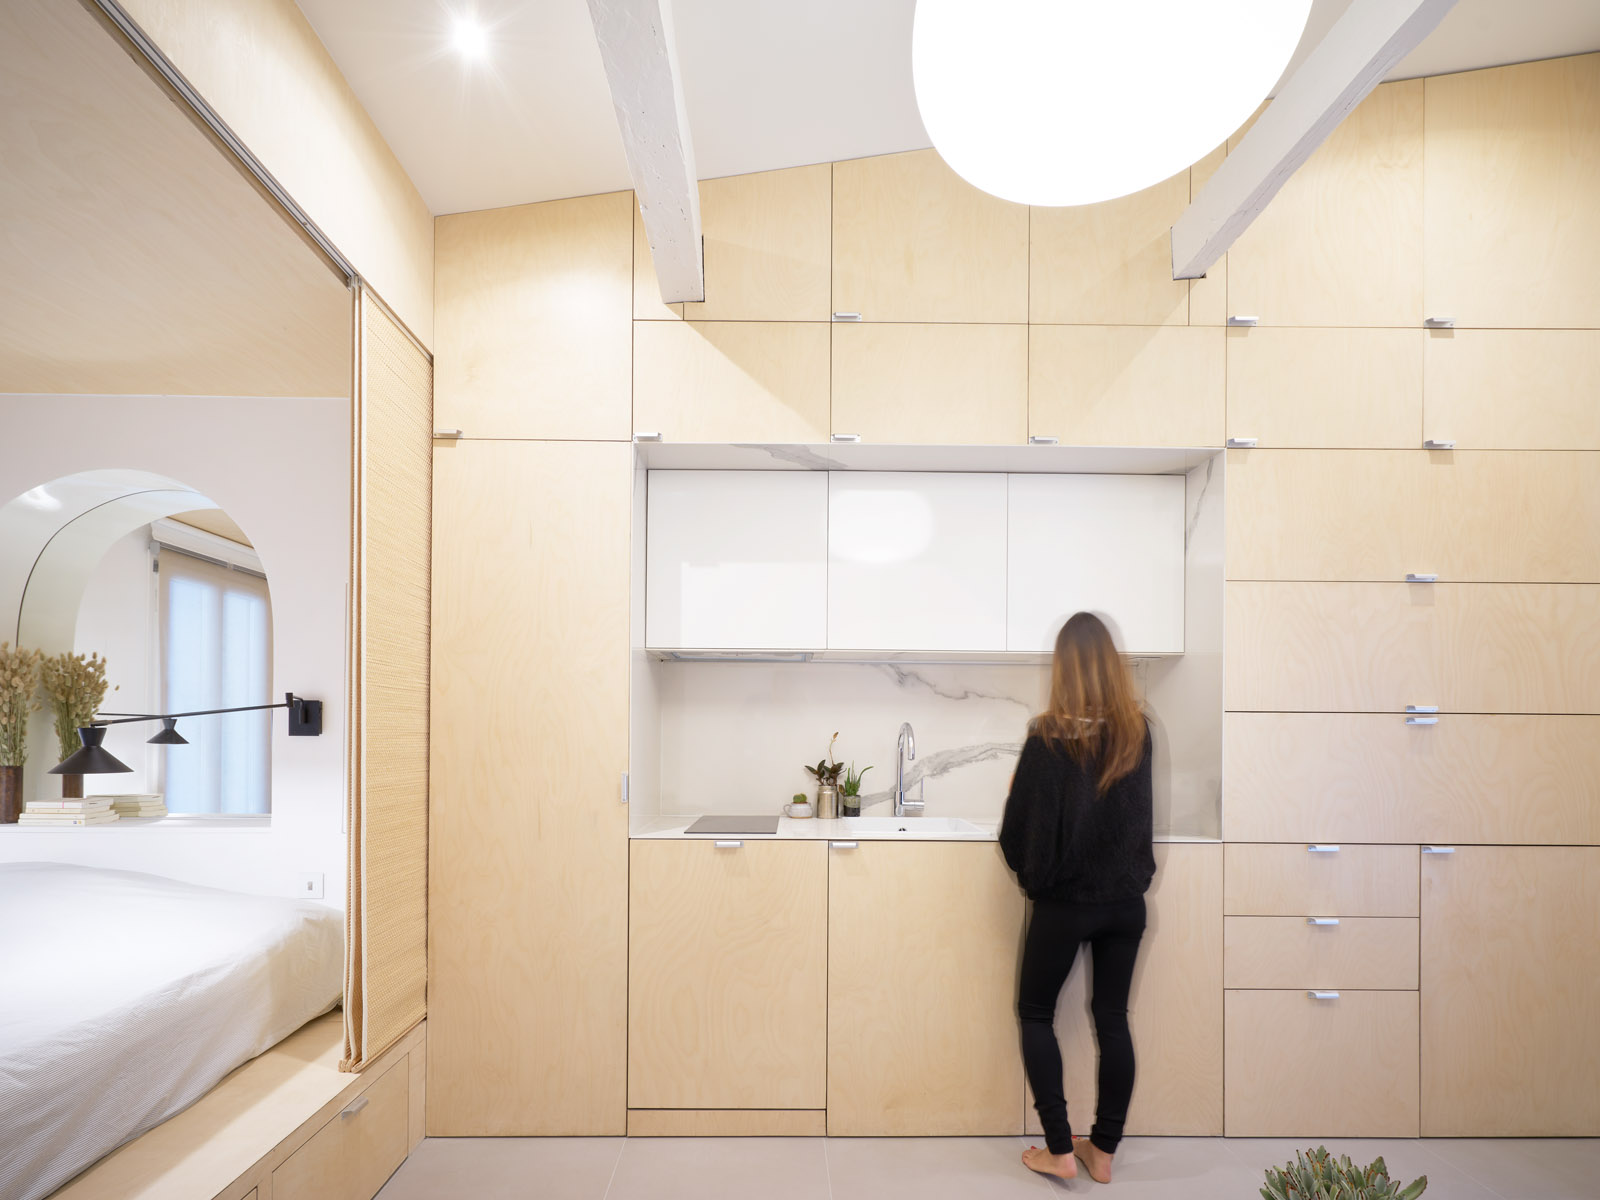 Interior of small studio apartment with a wall of lightwood cabinets and a small kitchen counter, with a bed on a pedestaled unit to the left of it. A woman stands at the sink.